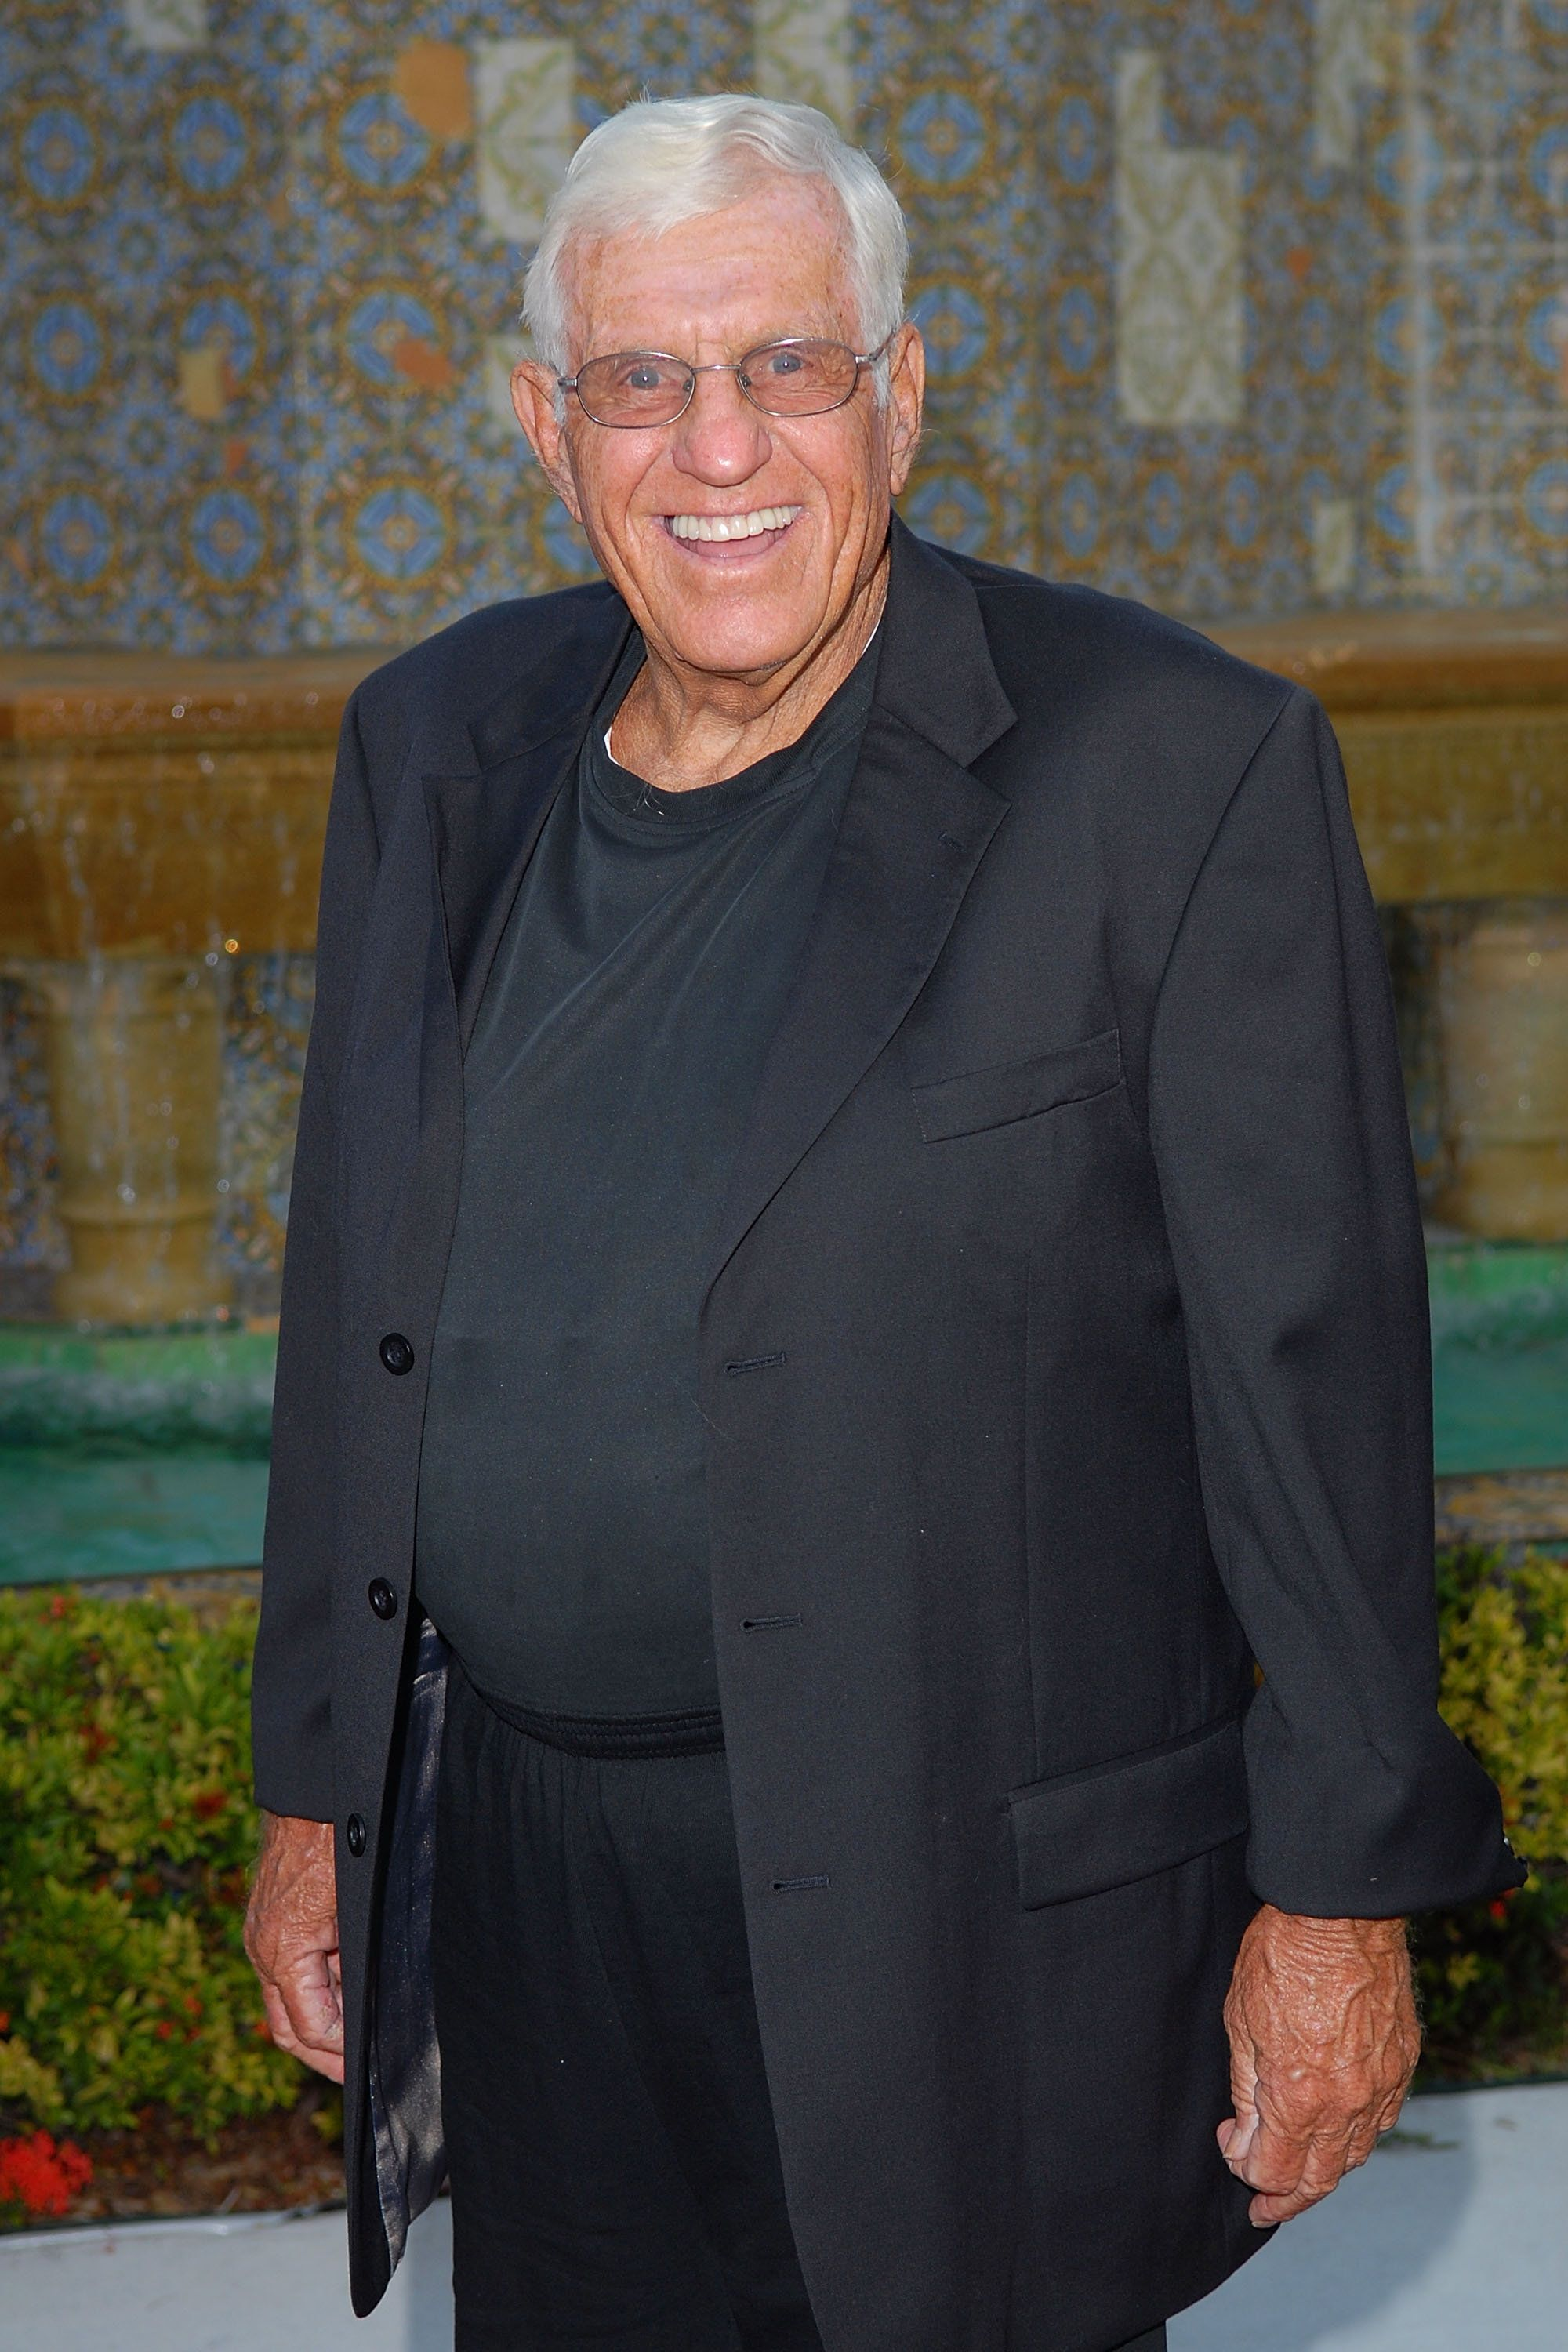 BOCA RATON, FL - NOVEMBER 03:  Actor Jerry Van Dyke attends the Chris Evert/Raymond James Pro Celebrity tennis classic  cocktail reception and silent auction on November 02, 2007 in Boca Raton, Florida  (Photo by Jeff Daly/FilmMagic)